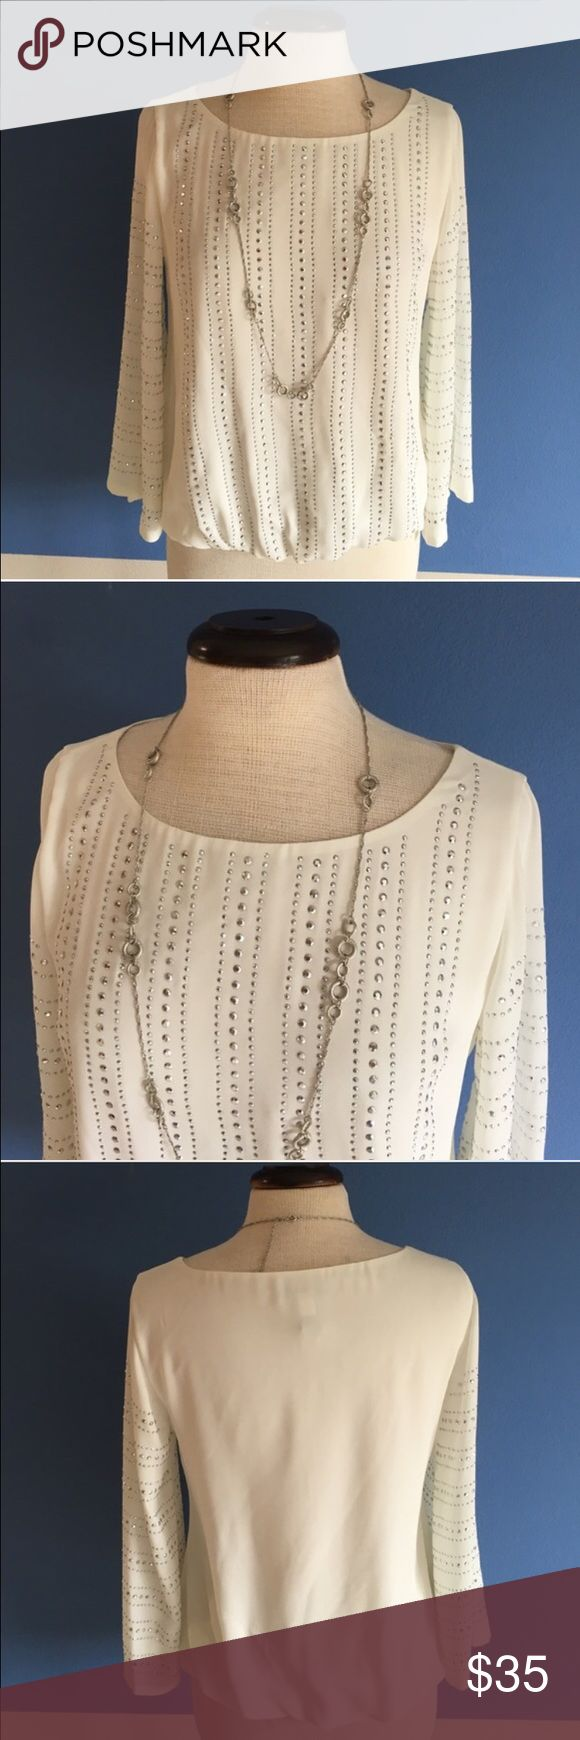 """Alfani Cream Studded Blouse Wow!   This blouse is sure to make a statement.  The studs highlight the front and arms of the top. The back is solid cream. The elastic bottom provides the perfect fit. Material:  100% Polyester.  Measurements:  Length- 23""""/Bust - 19"""" Alfani Tops Blouses"""